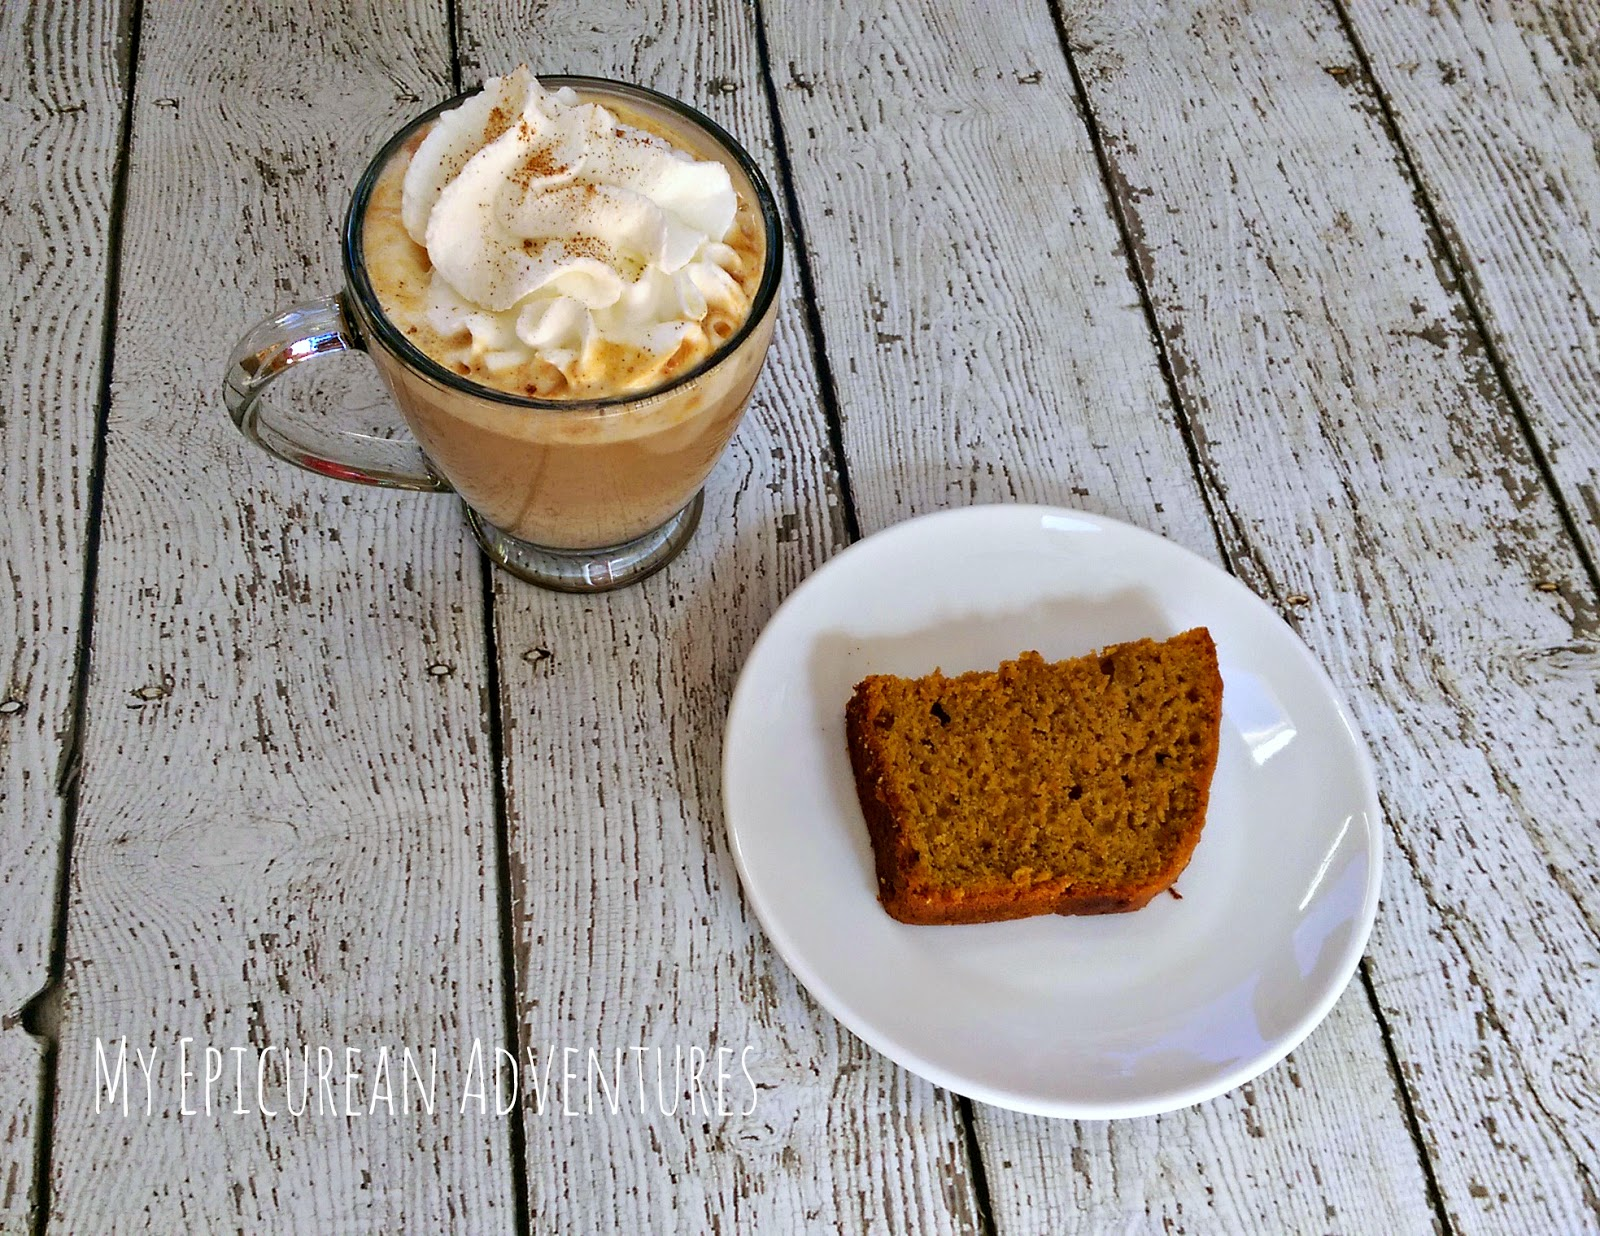 DIY Pumpkin Spice Latte. Tastier, cheaper AND better for you! SOO goood!